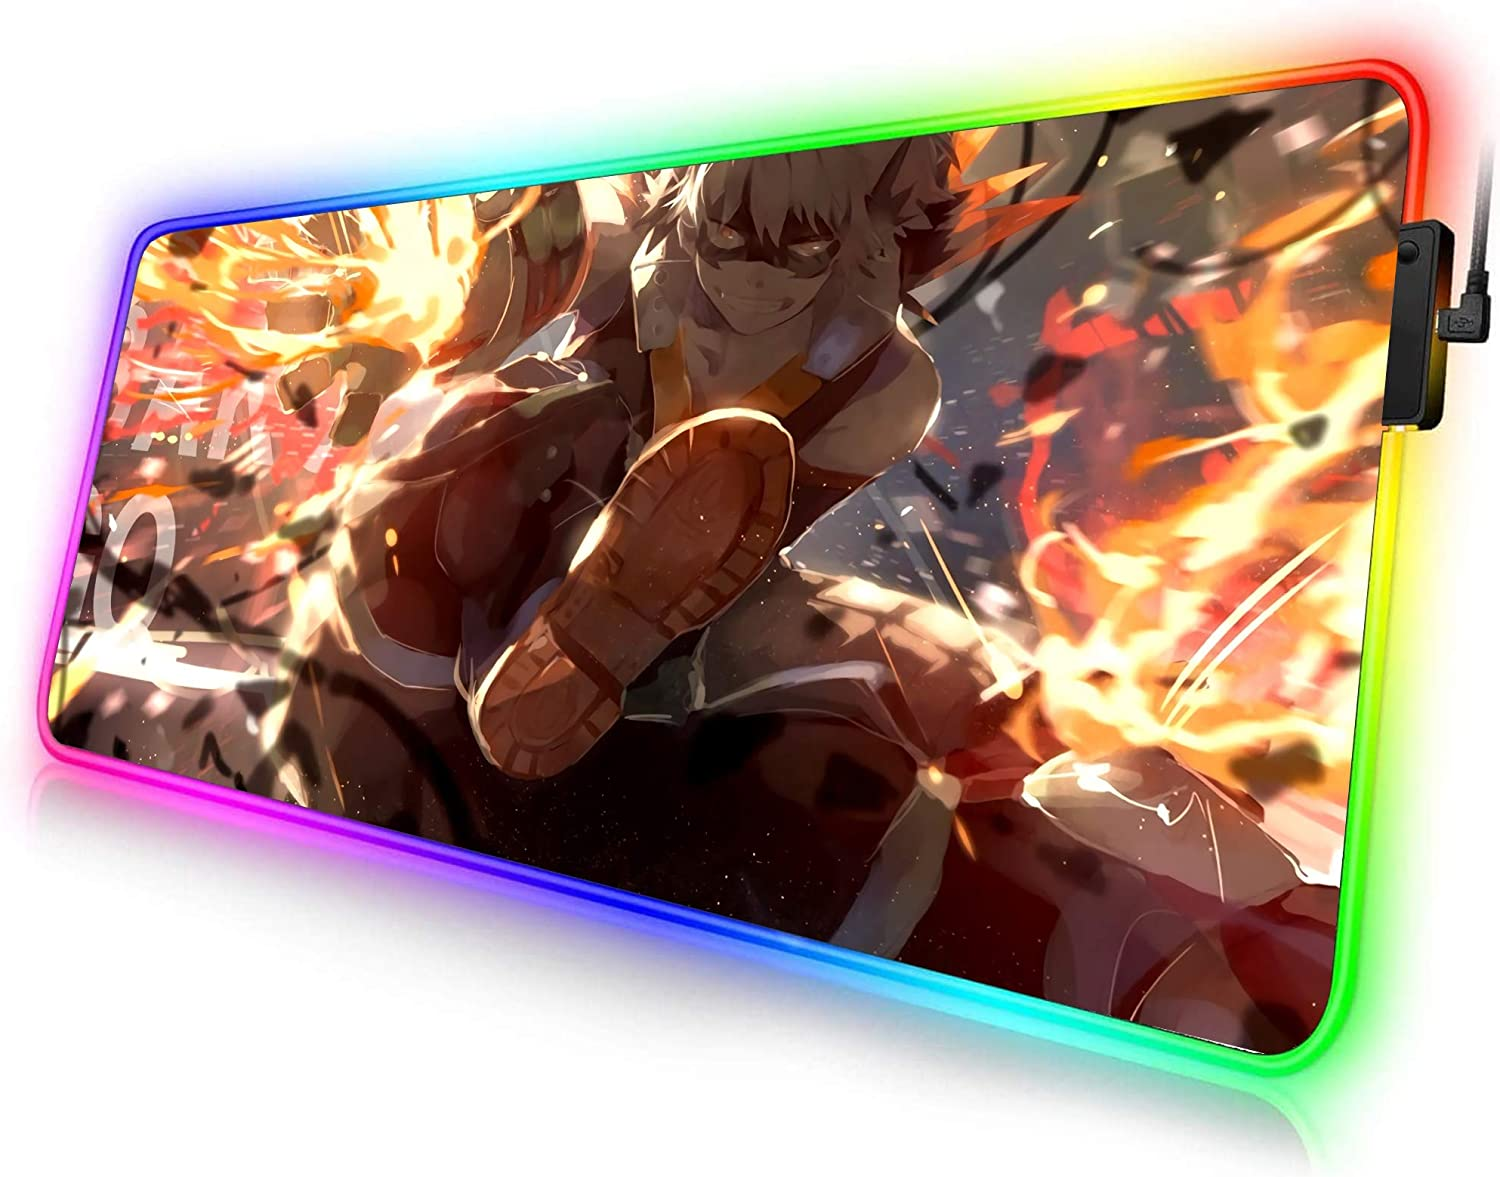 Hero x Villain LED 16 x 35 inches Totem World Trading Card Games Mouse Pad Compatible with Gaming Pokemon Yugioh Magic The Gathering MTG TCG Card Game Table Playmat